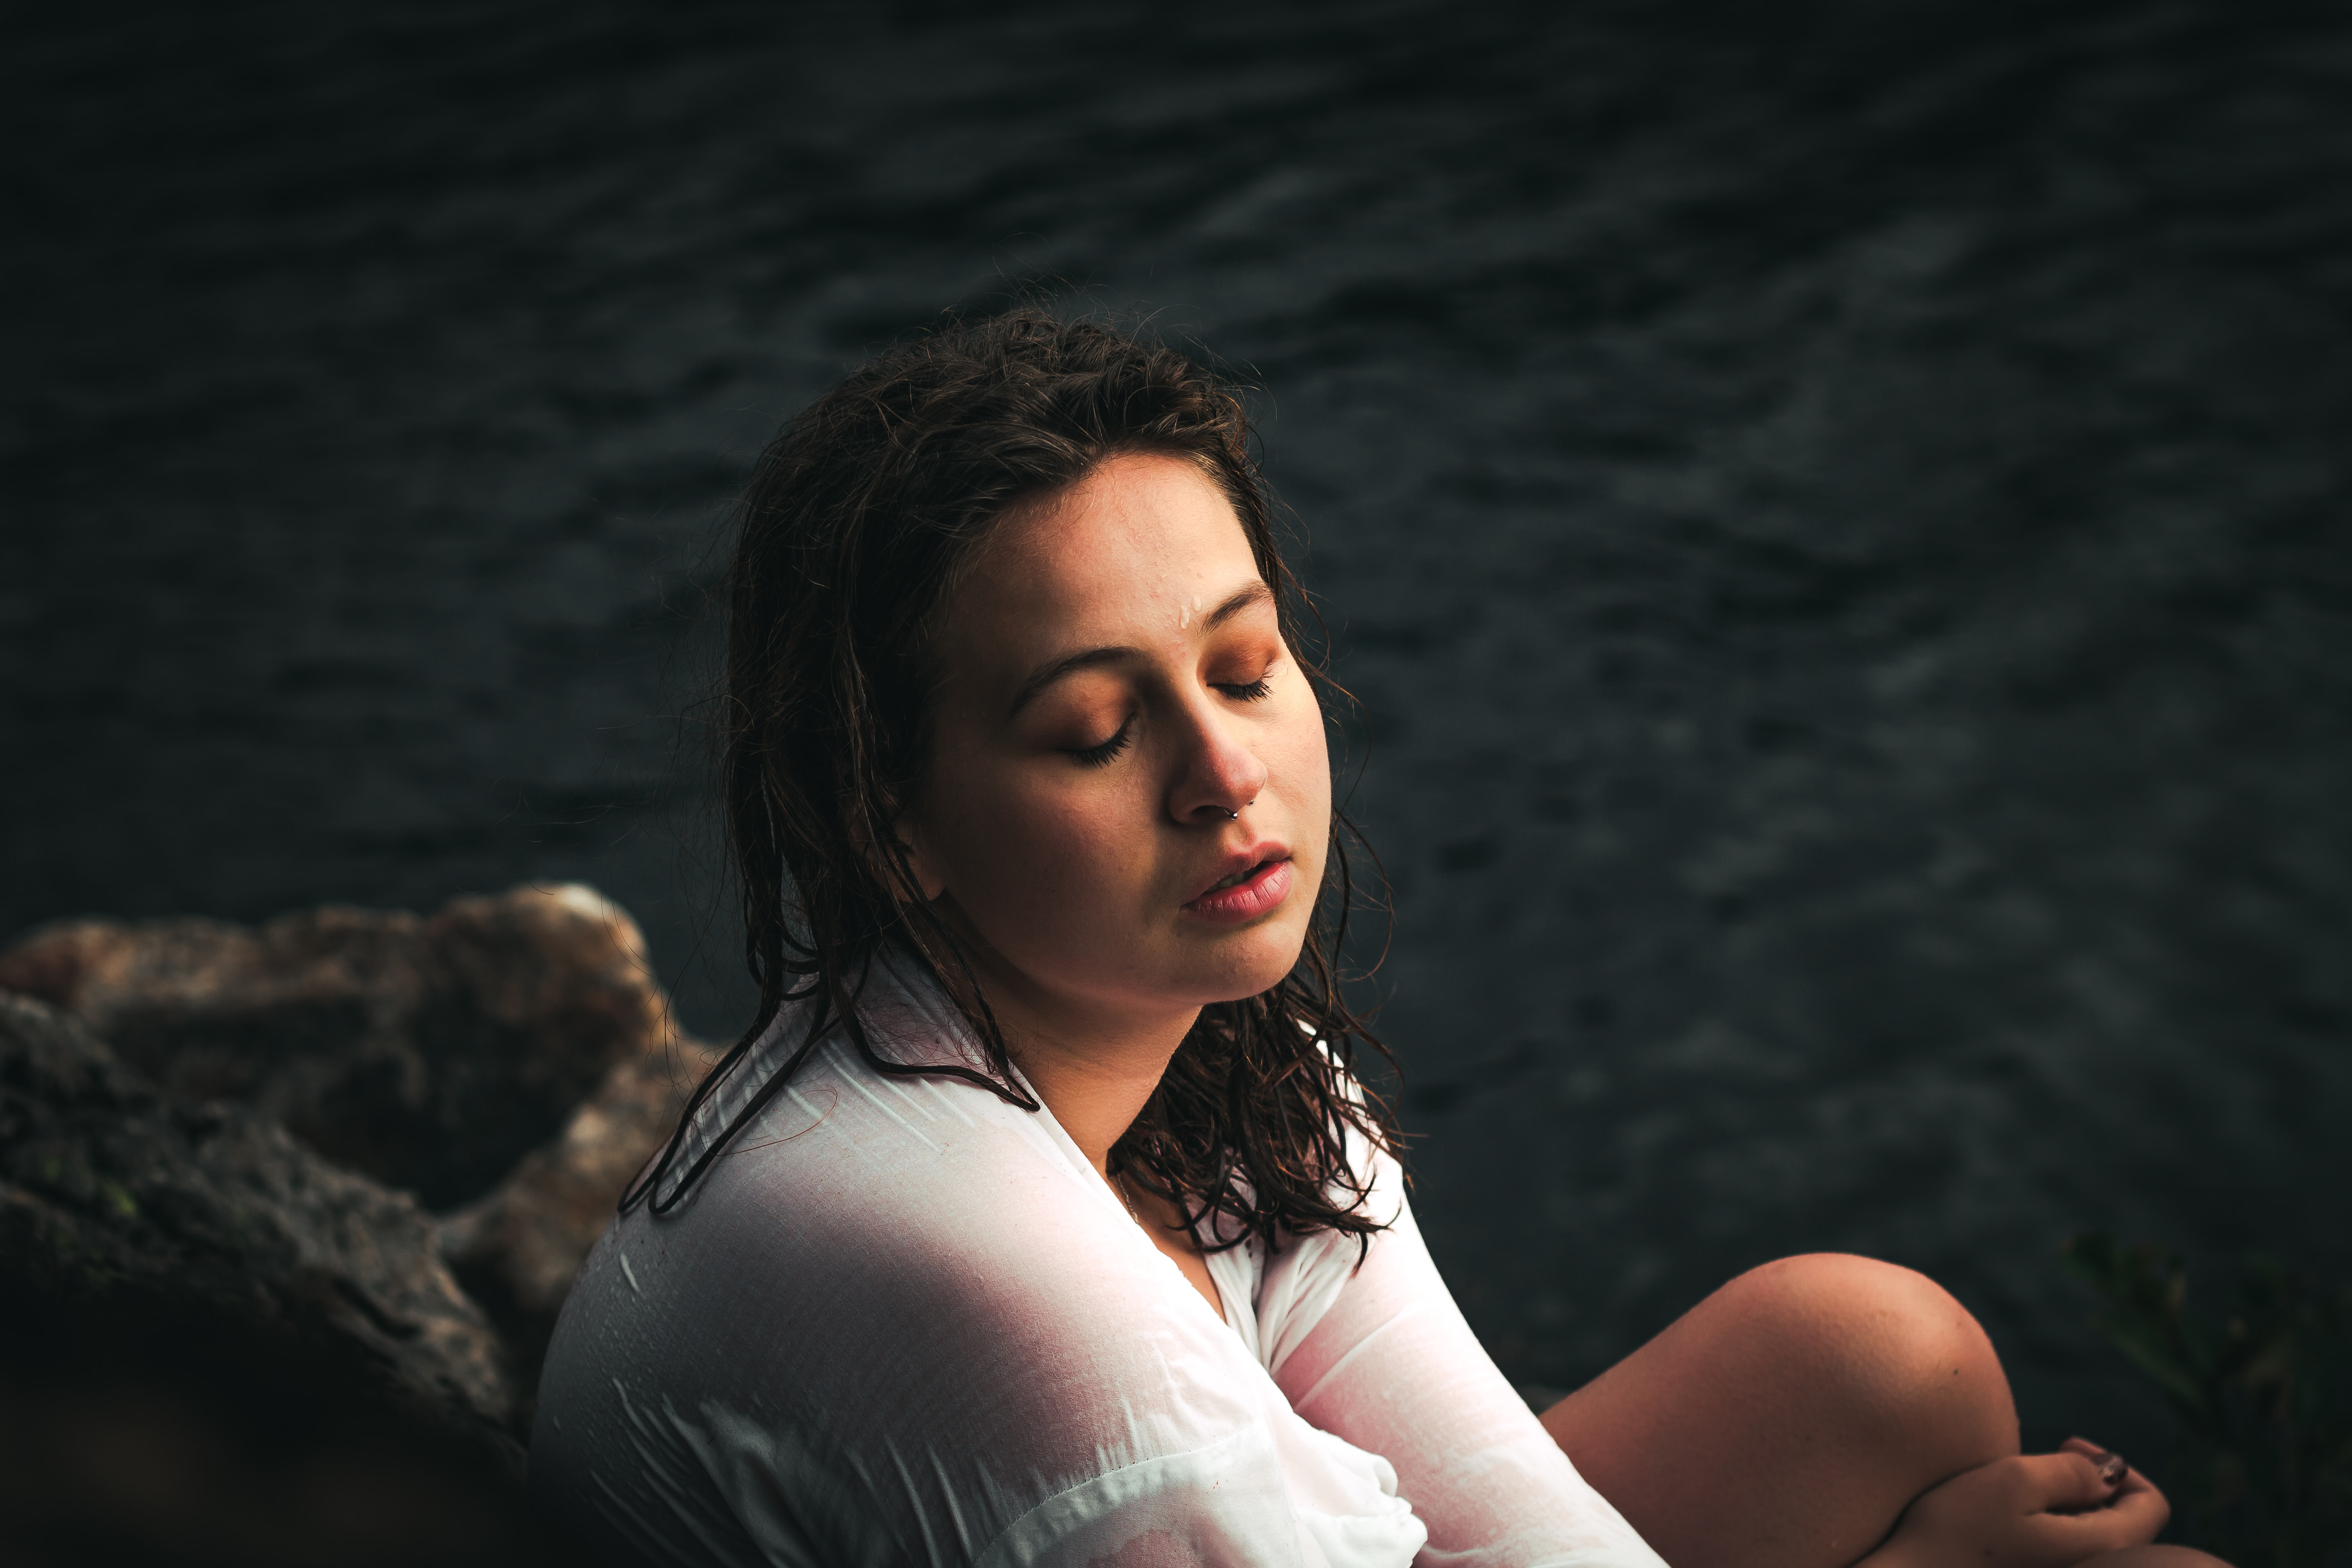 woman sitting near body of water during daytime